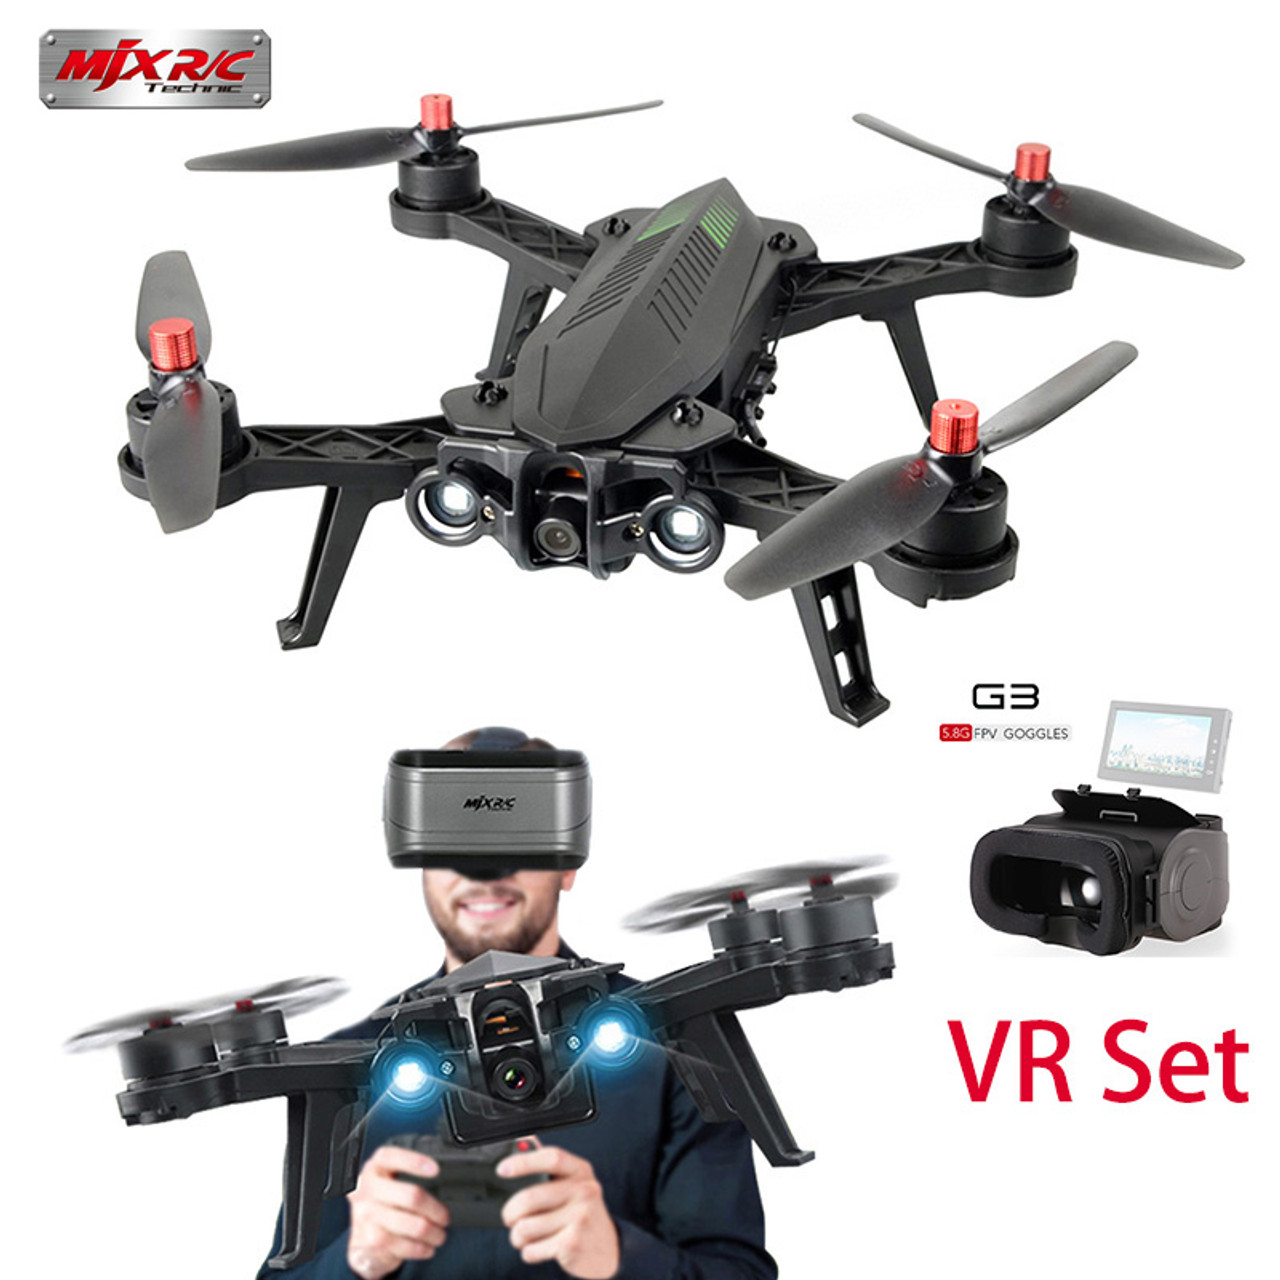 RC Helicopters MJX Bugs 6 B6 58G FPV VR Drone Kit 720P Camera Motor Brushless